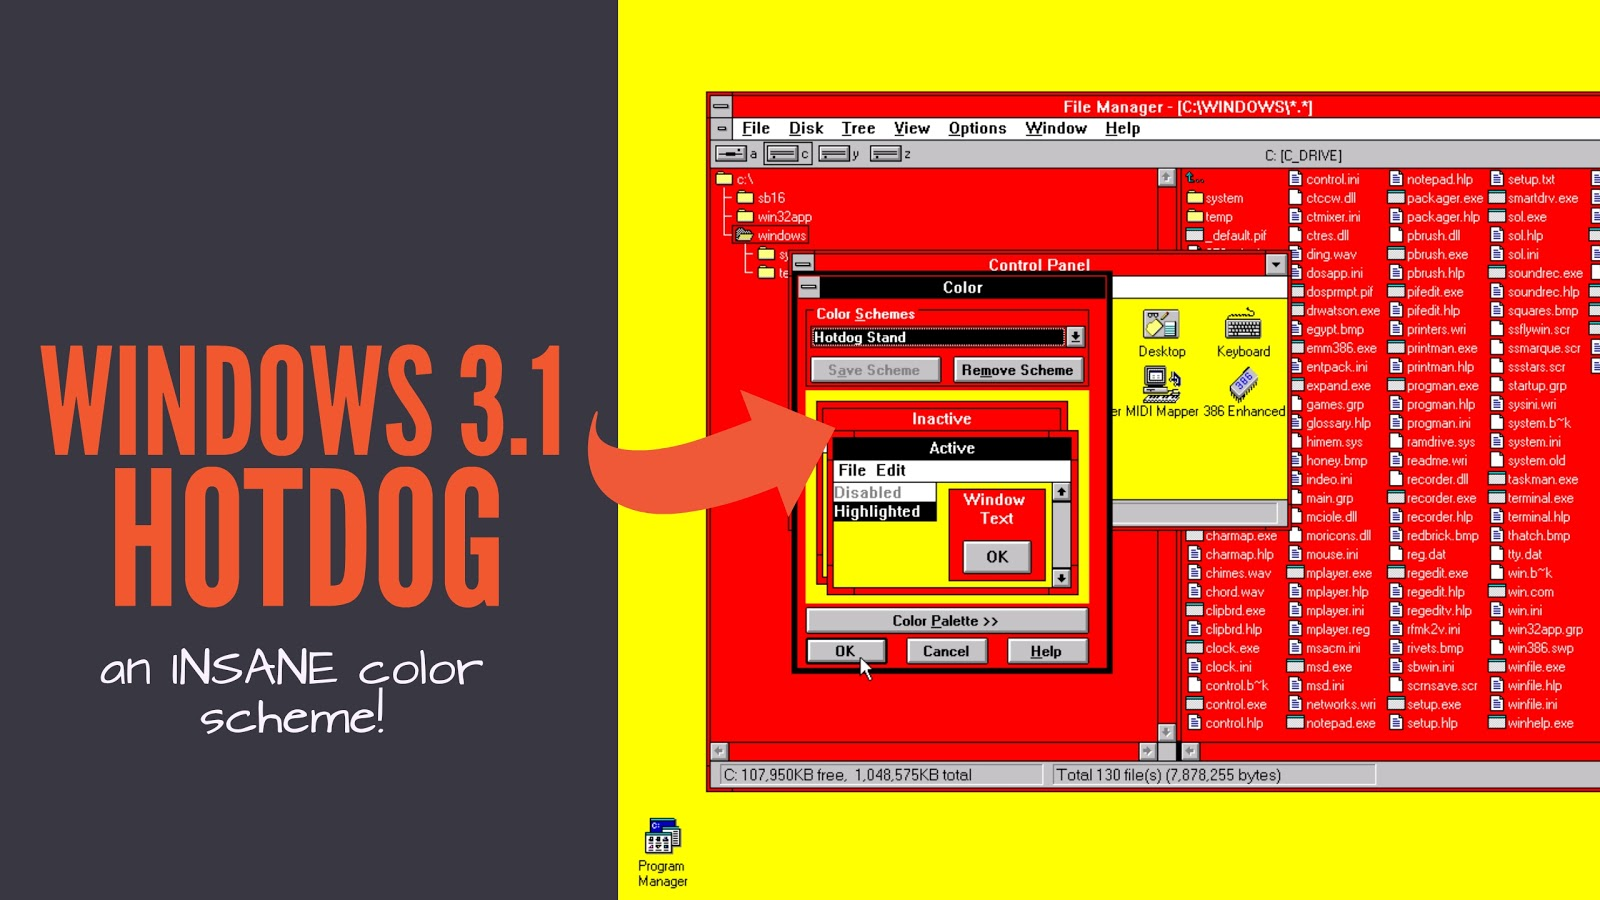 Attack of the Blog!: Windows 3 1 Hot Dog Stand Theme!